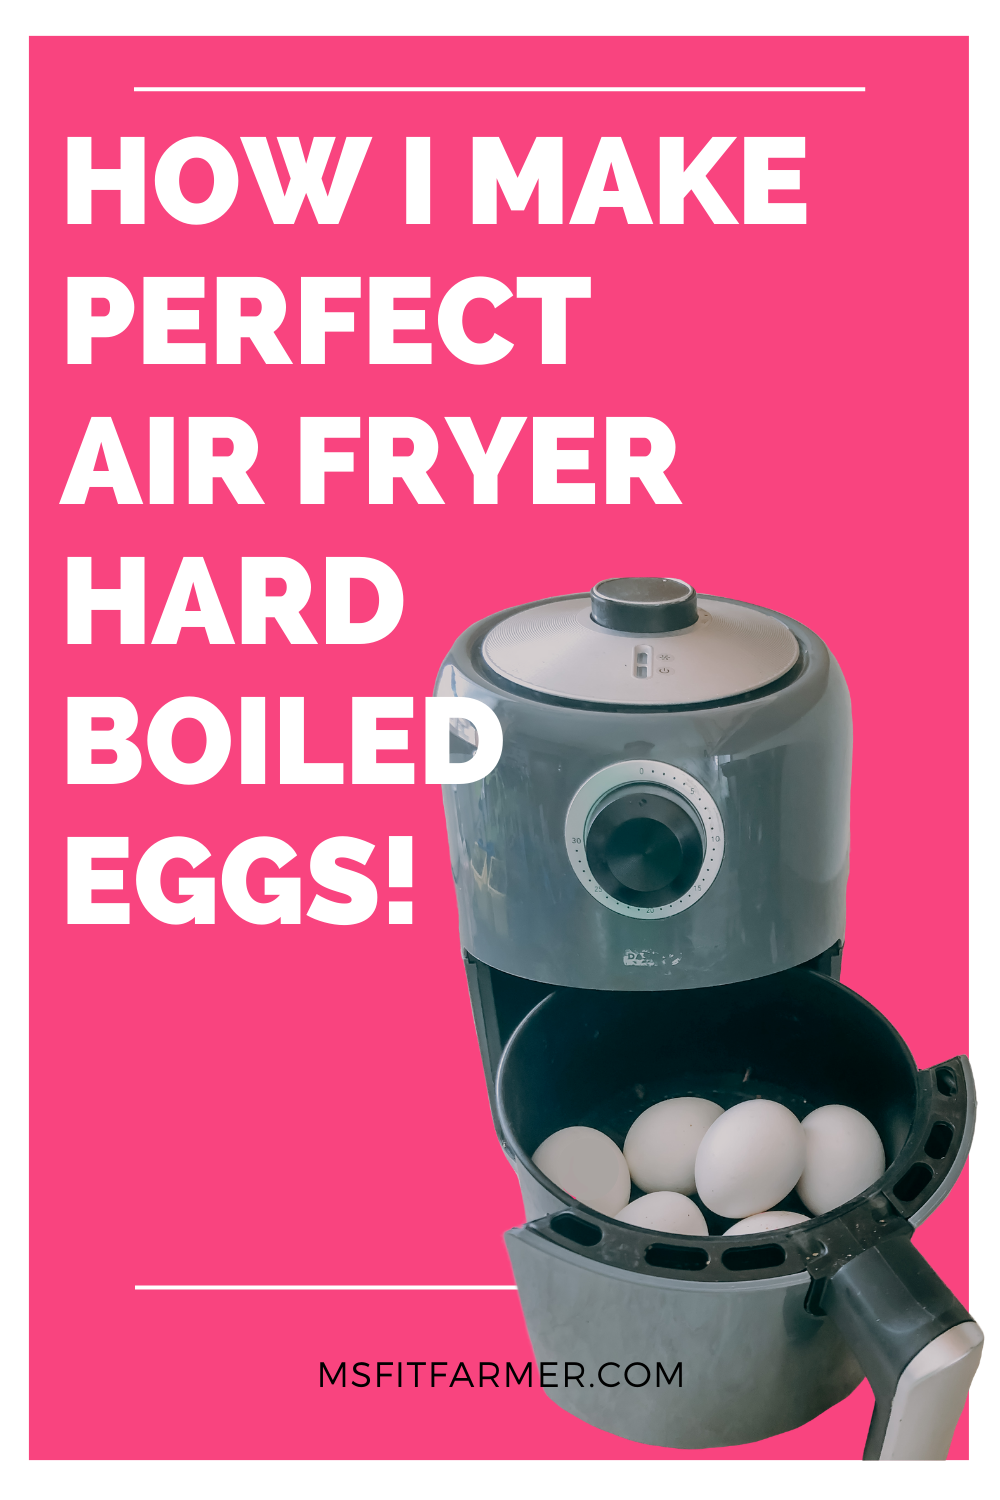 Make Perfect Hard Boiled Eggs in the Air Fryer (1 Ingredient, No Water!)